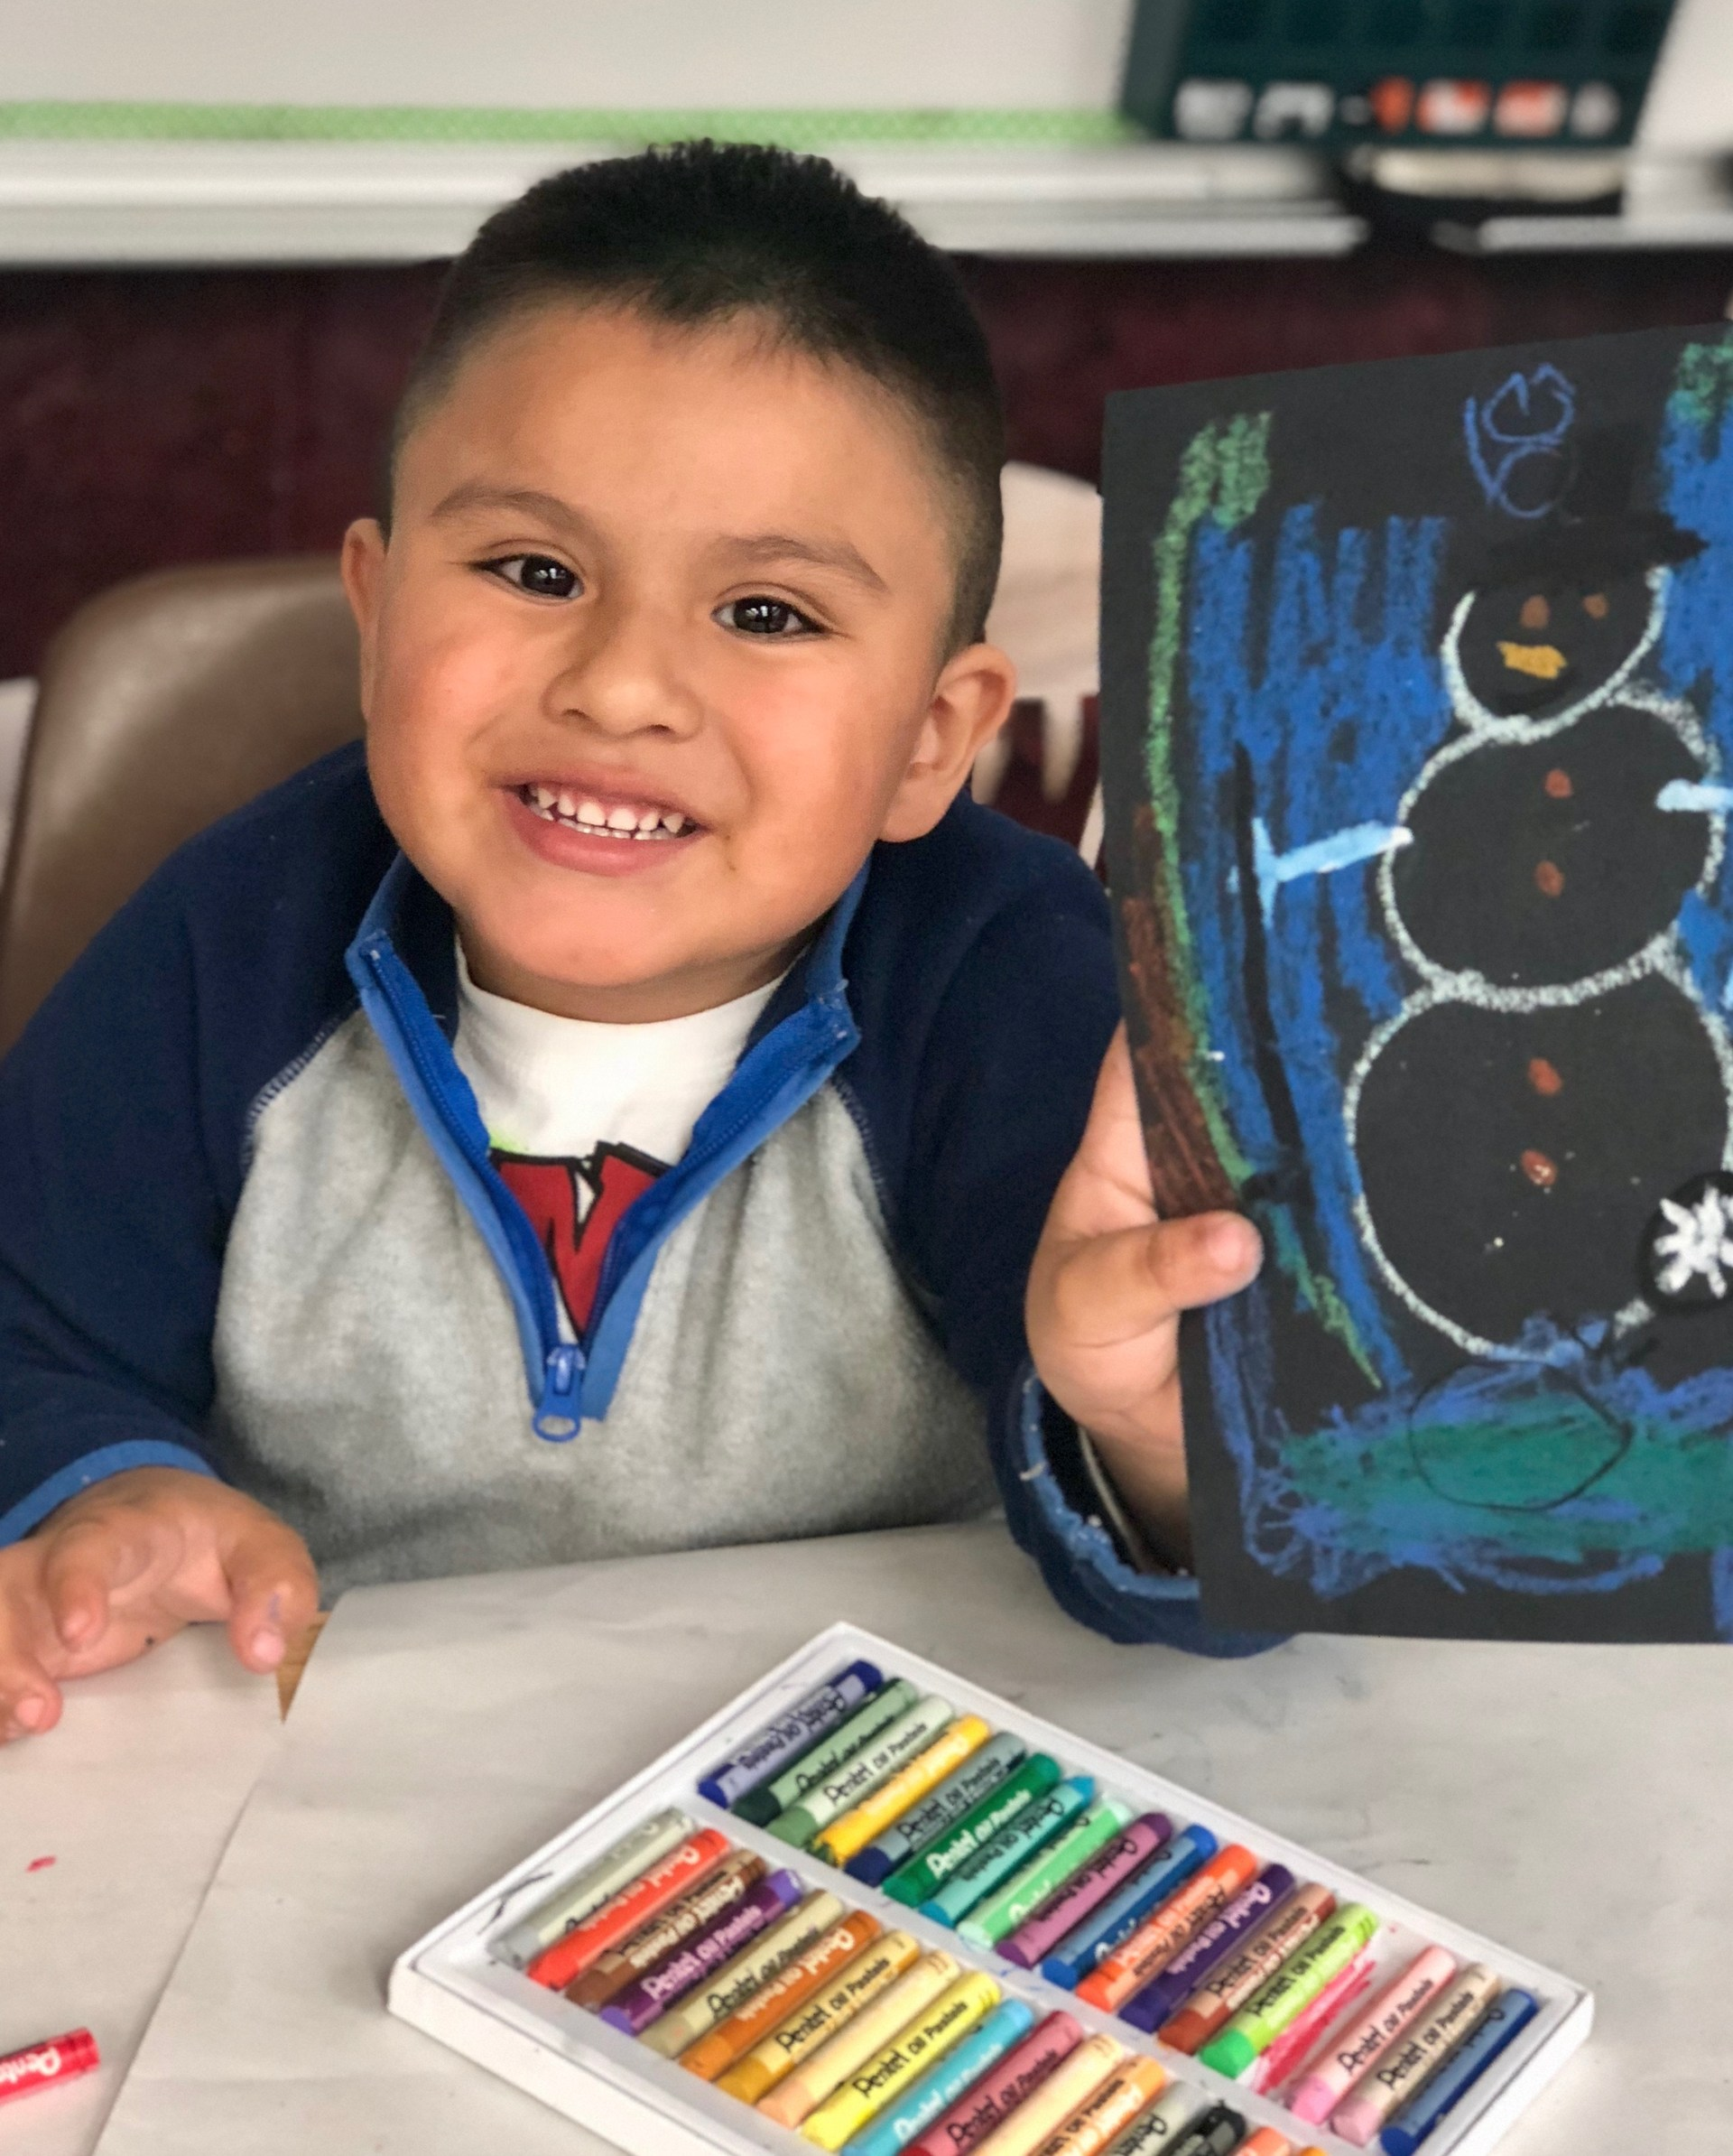 Boy showing his picture of a snowman.